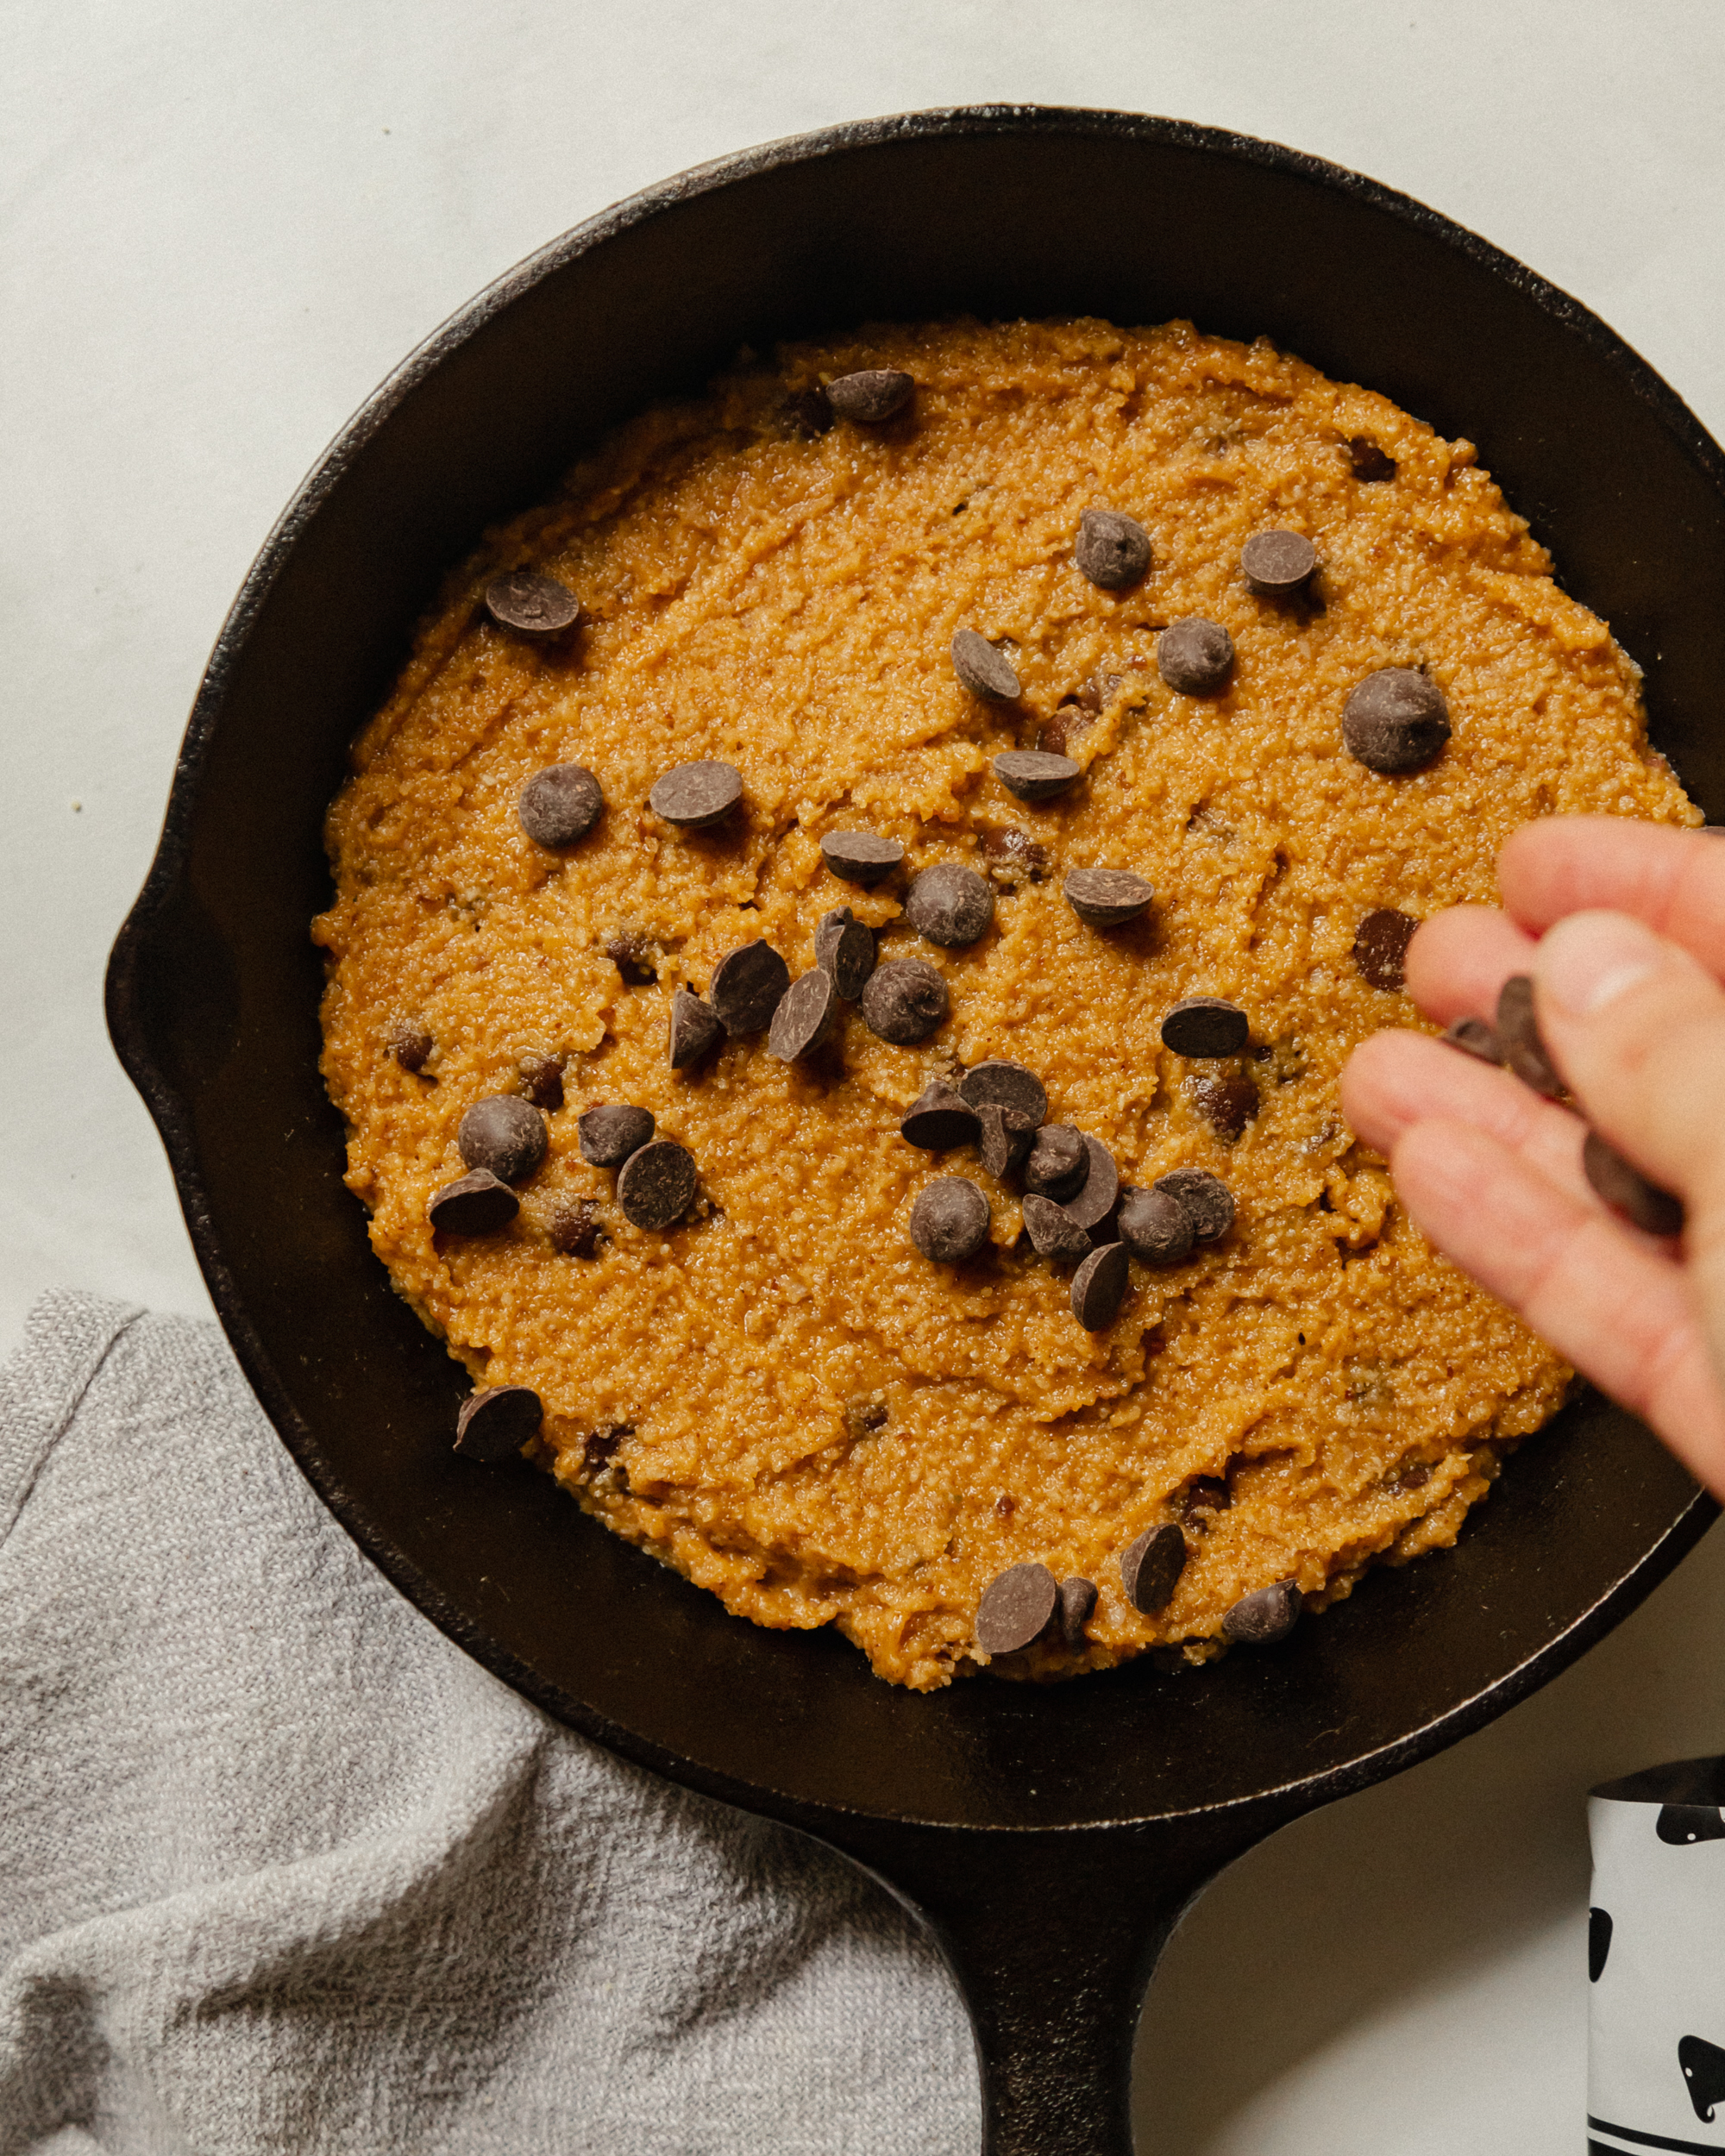 A hand is seen sprinkling chocolate chips on top of a large portion of cookie dough that is contained in a cast iron skillet.